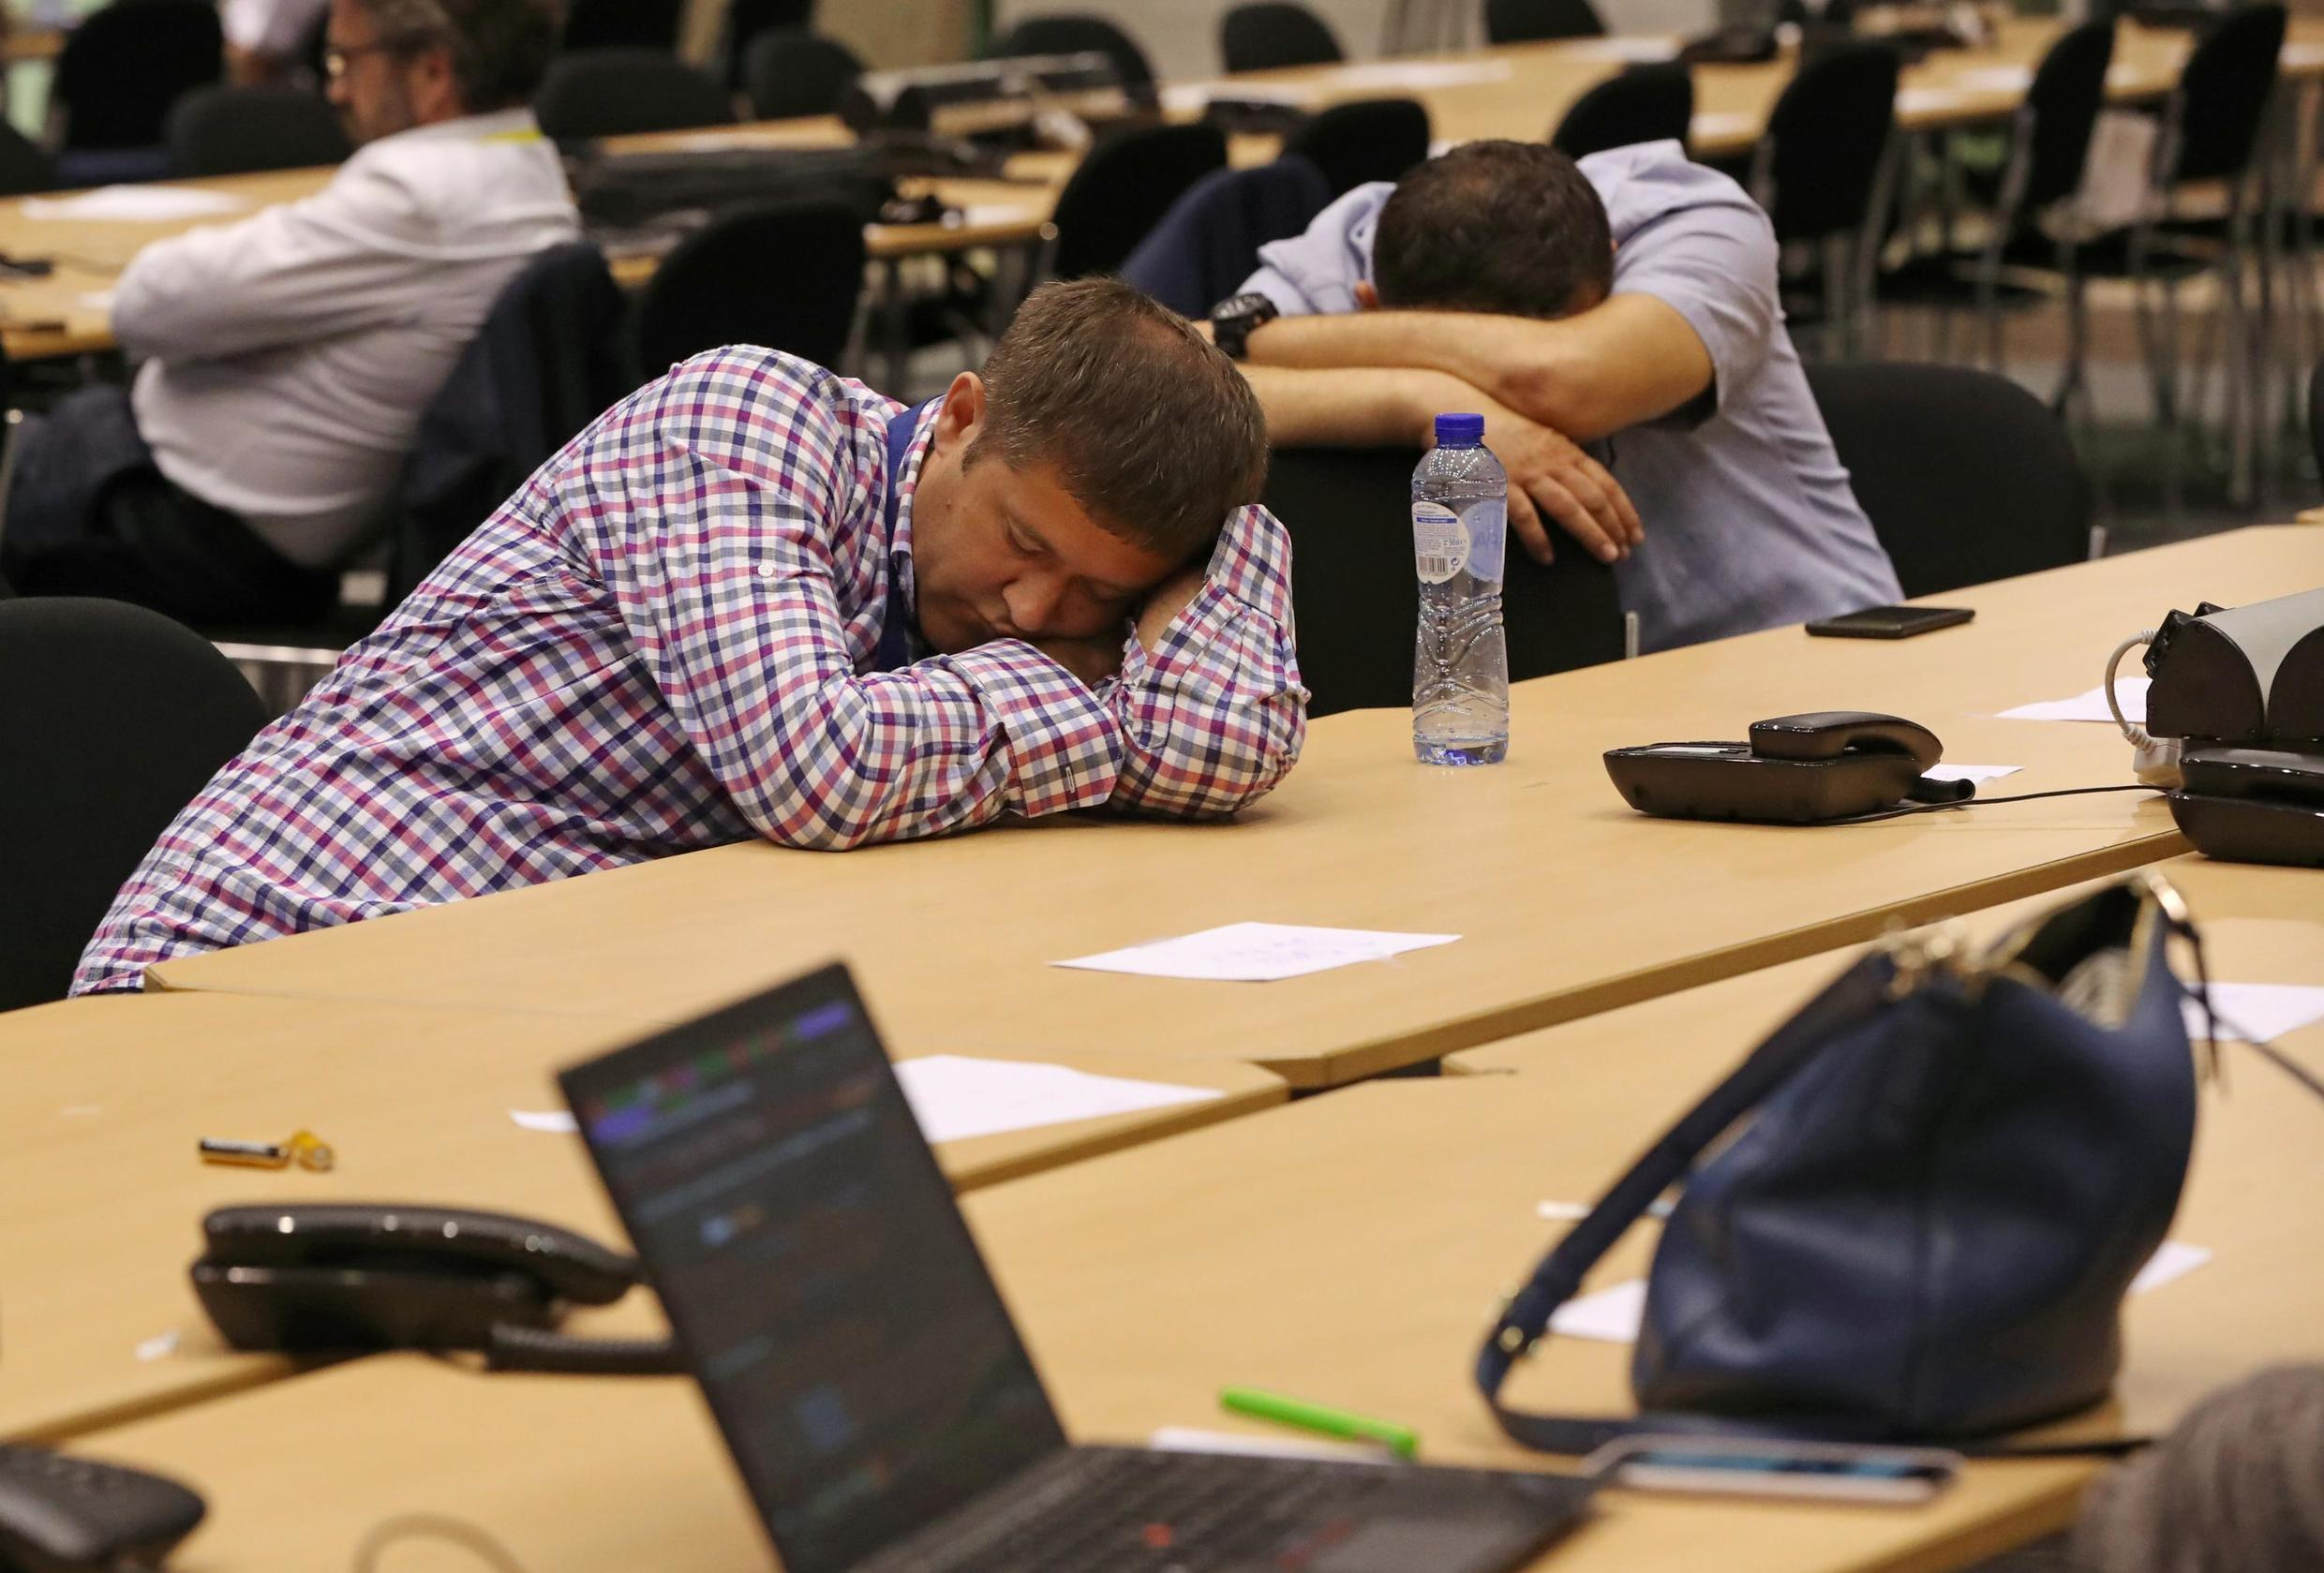 Journalists sleep while waiting for the end of a European Union leaders summit that aims to select candidates for top EU institution jobs, in Brussels, on July 1.